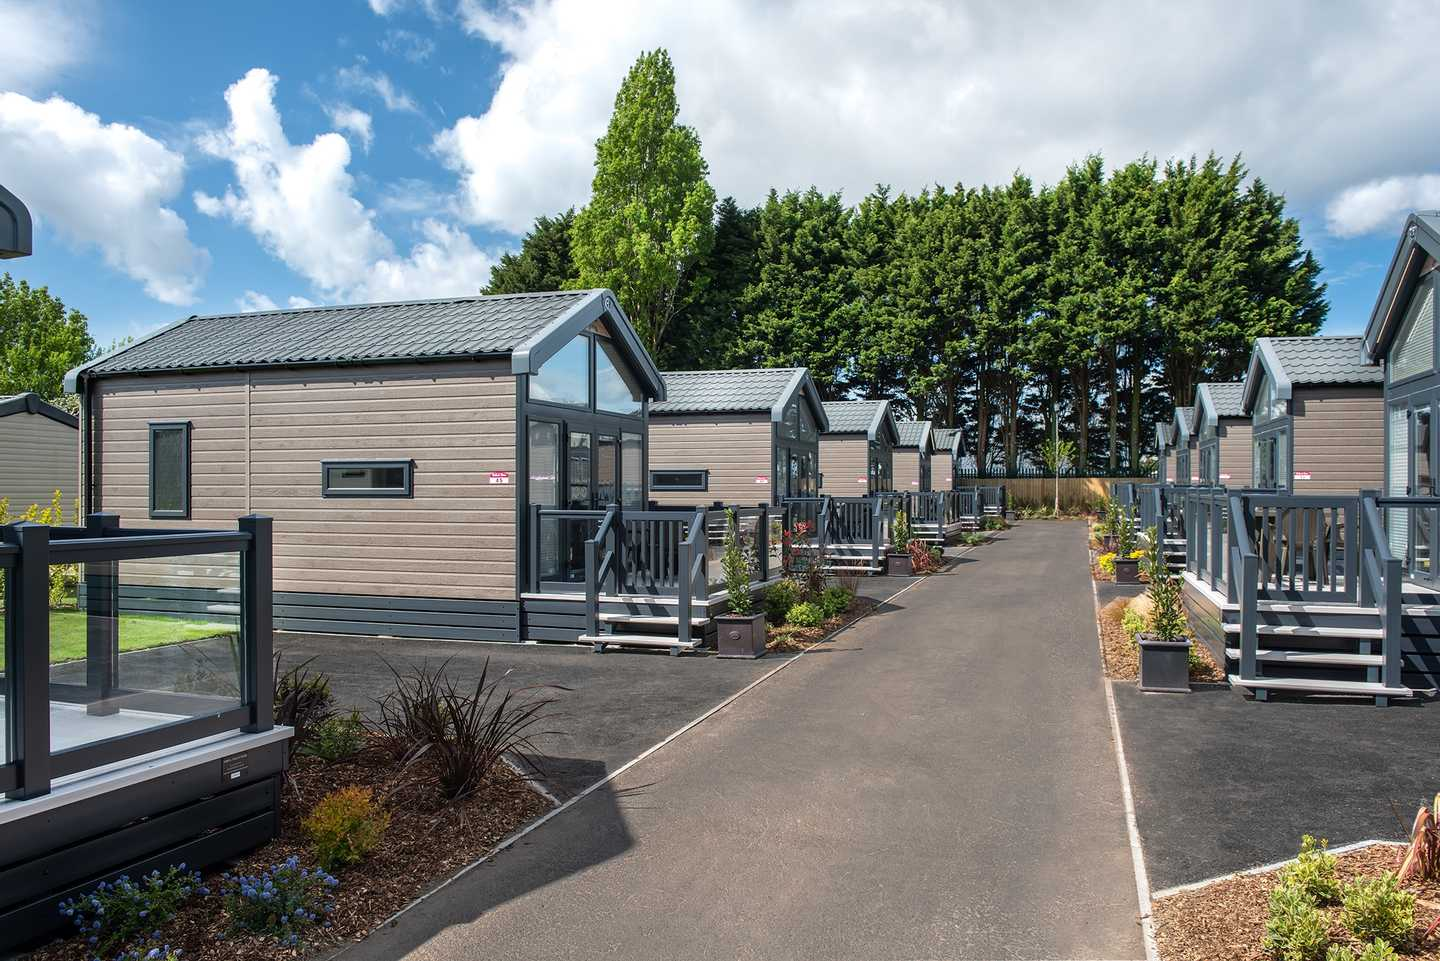 Example of the exterior view of a Luxury Pod at Rockley Park